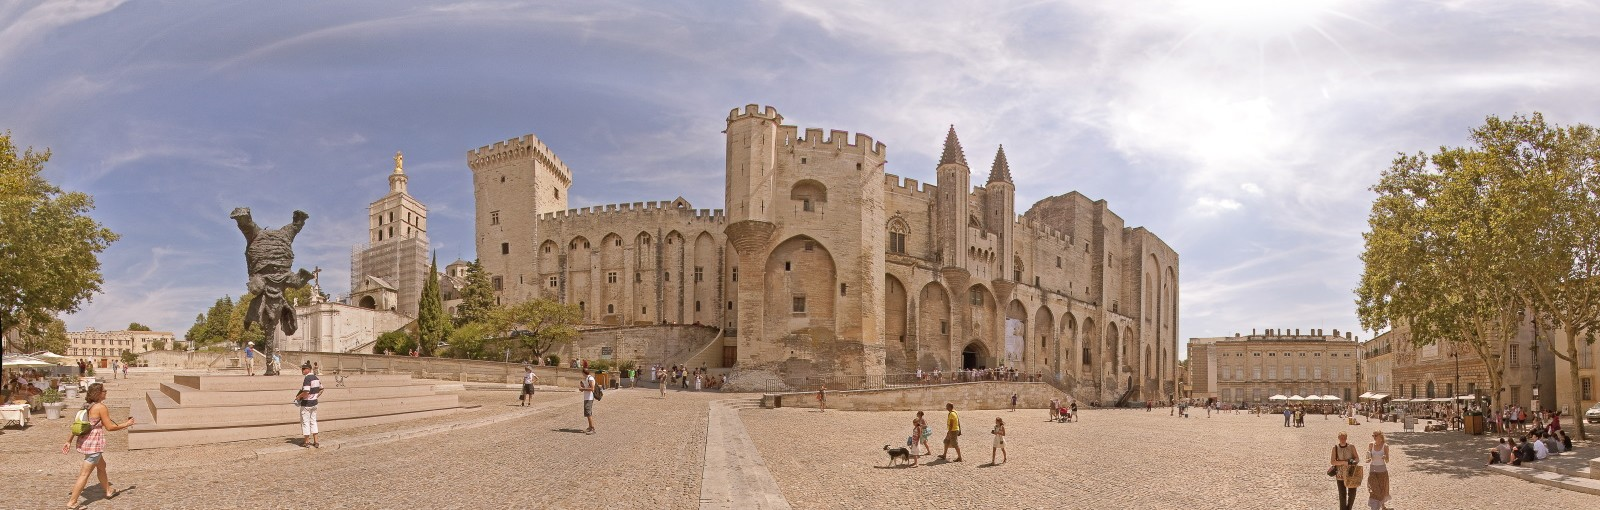 Tours One day in Provence - Provence - Regional tours